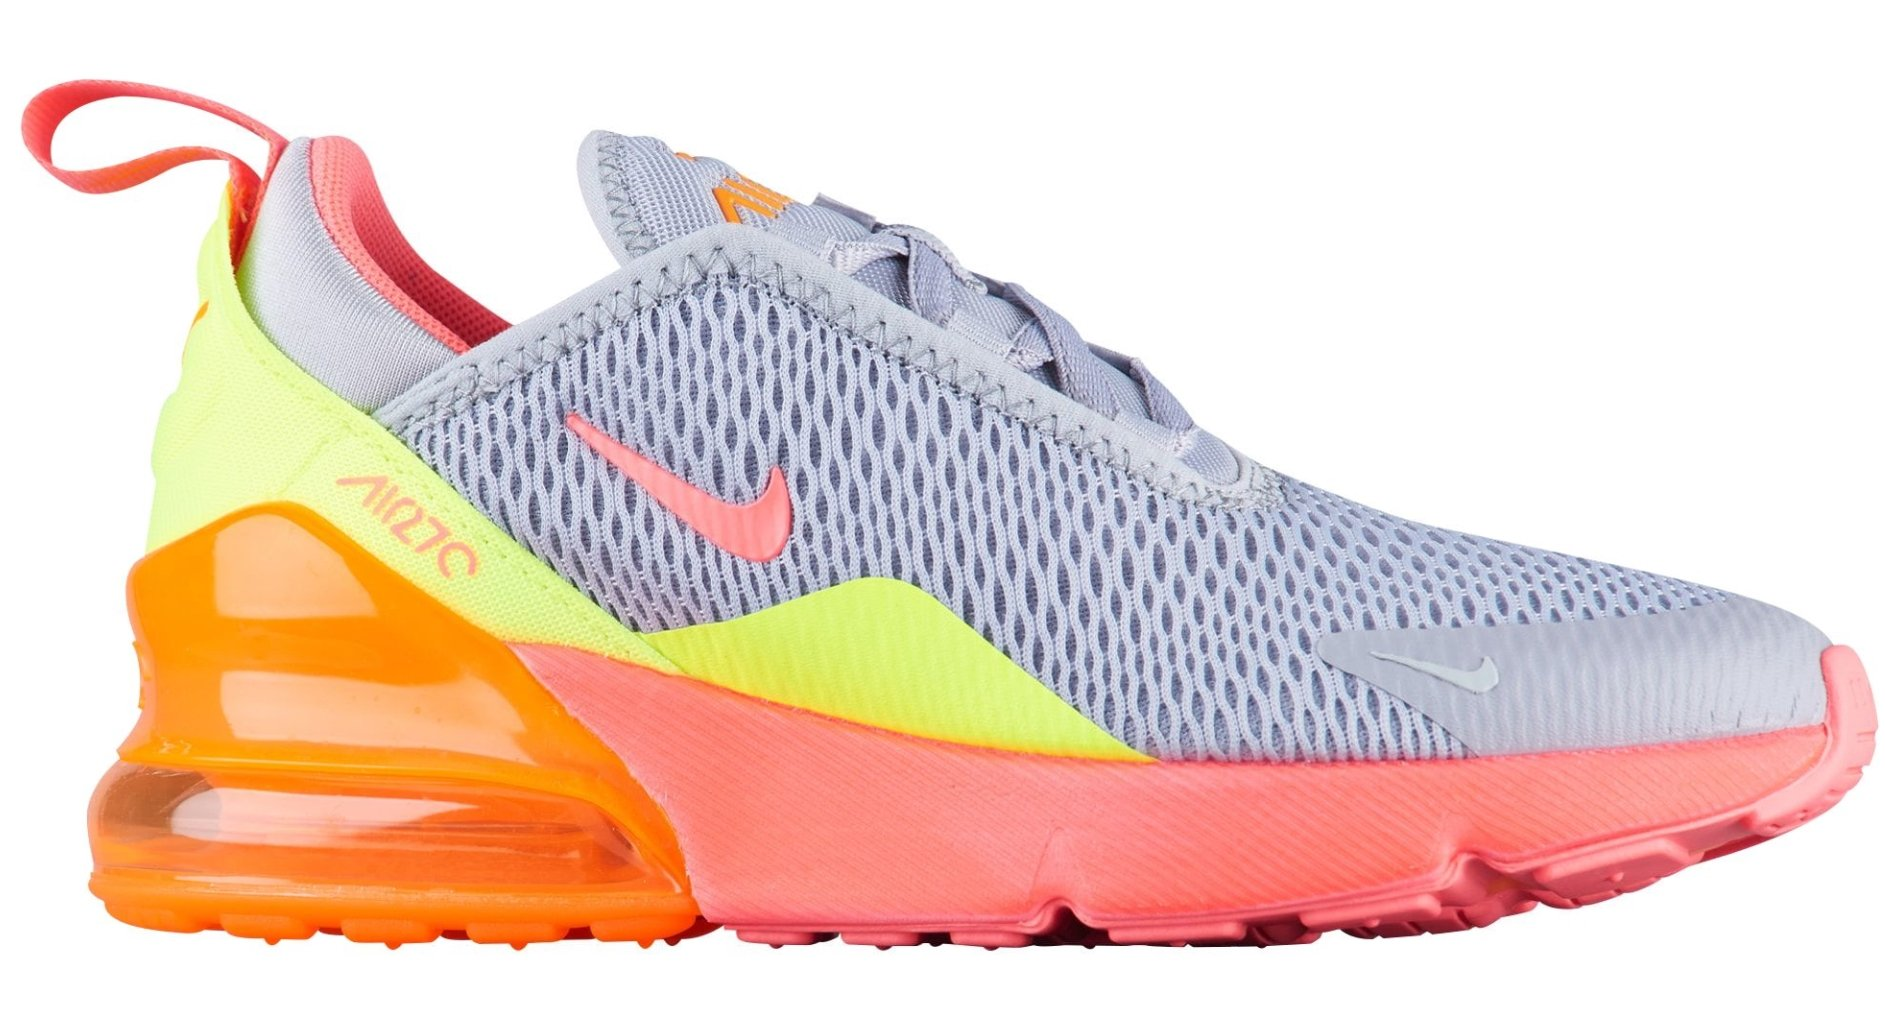 release date b6448 ece5d Galleon - Nike Air Max 270 (ps) Little Kids Ao2372-003 Size 1.5